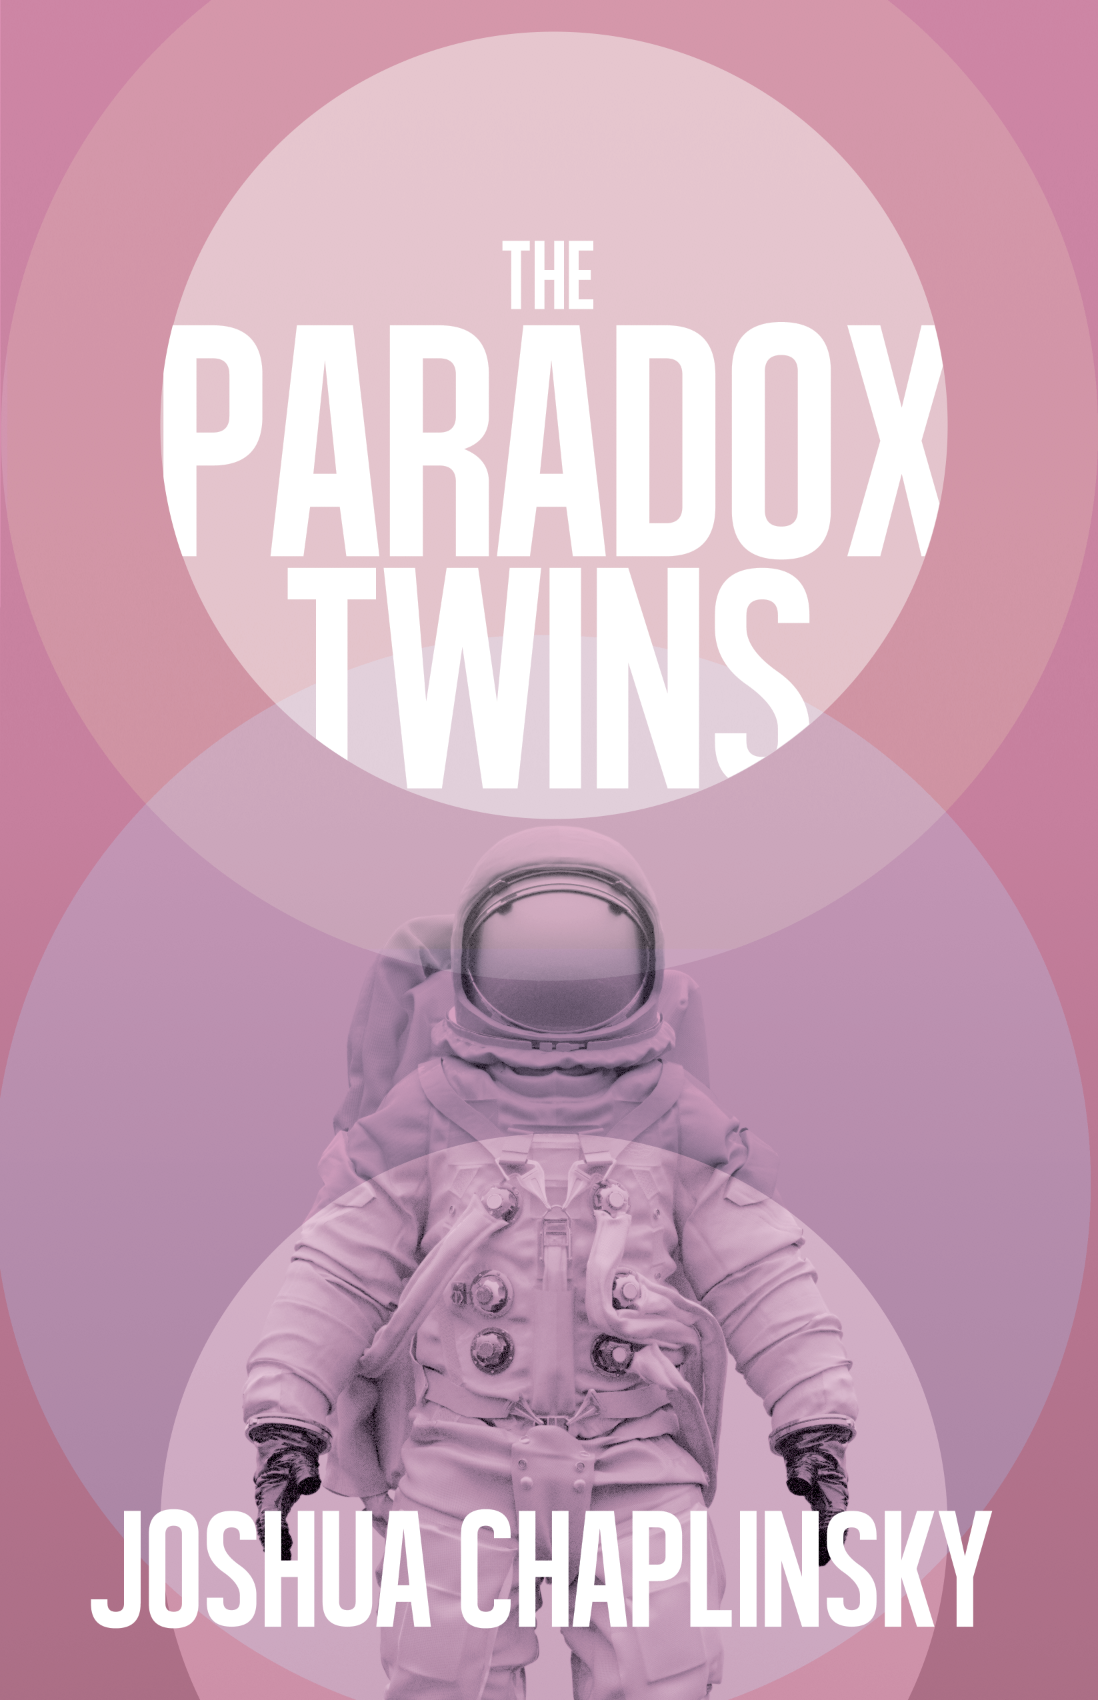 The Paradox Twins